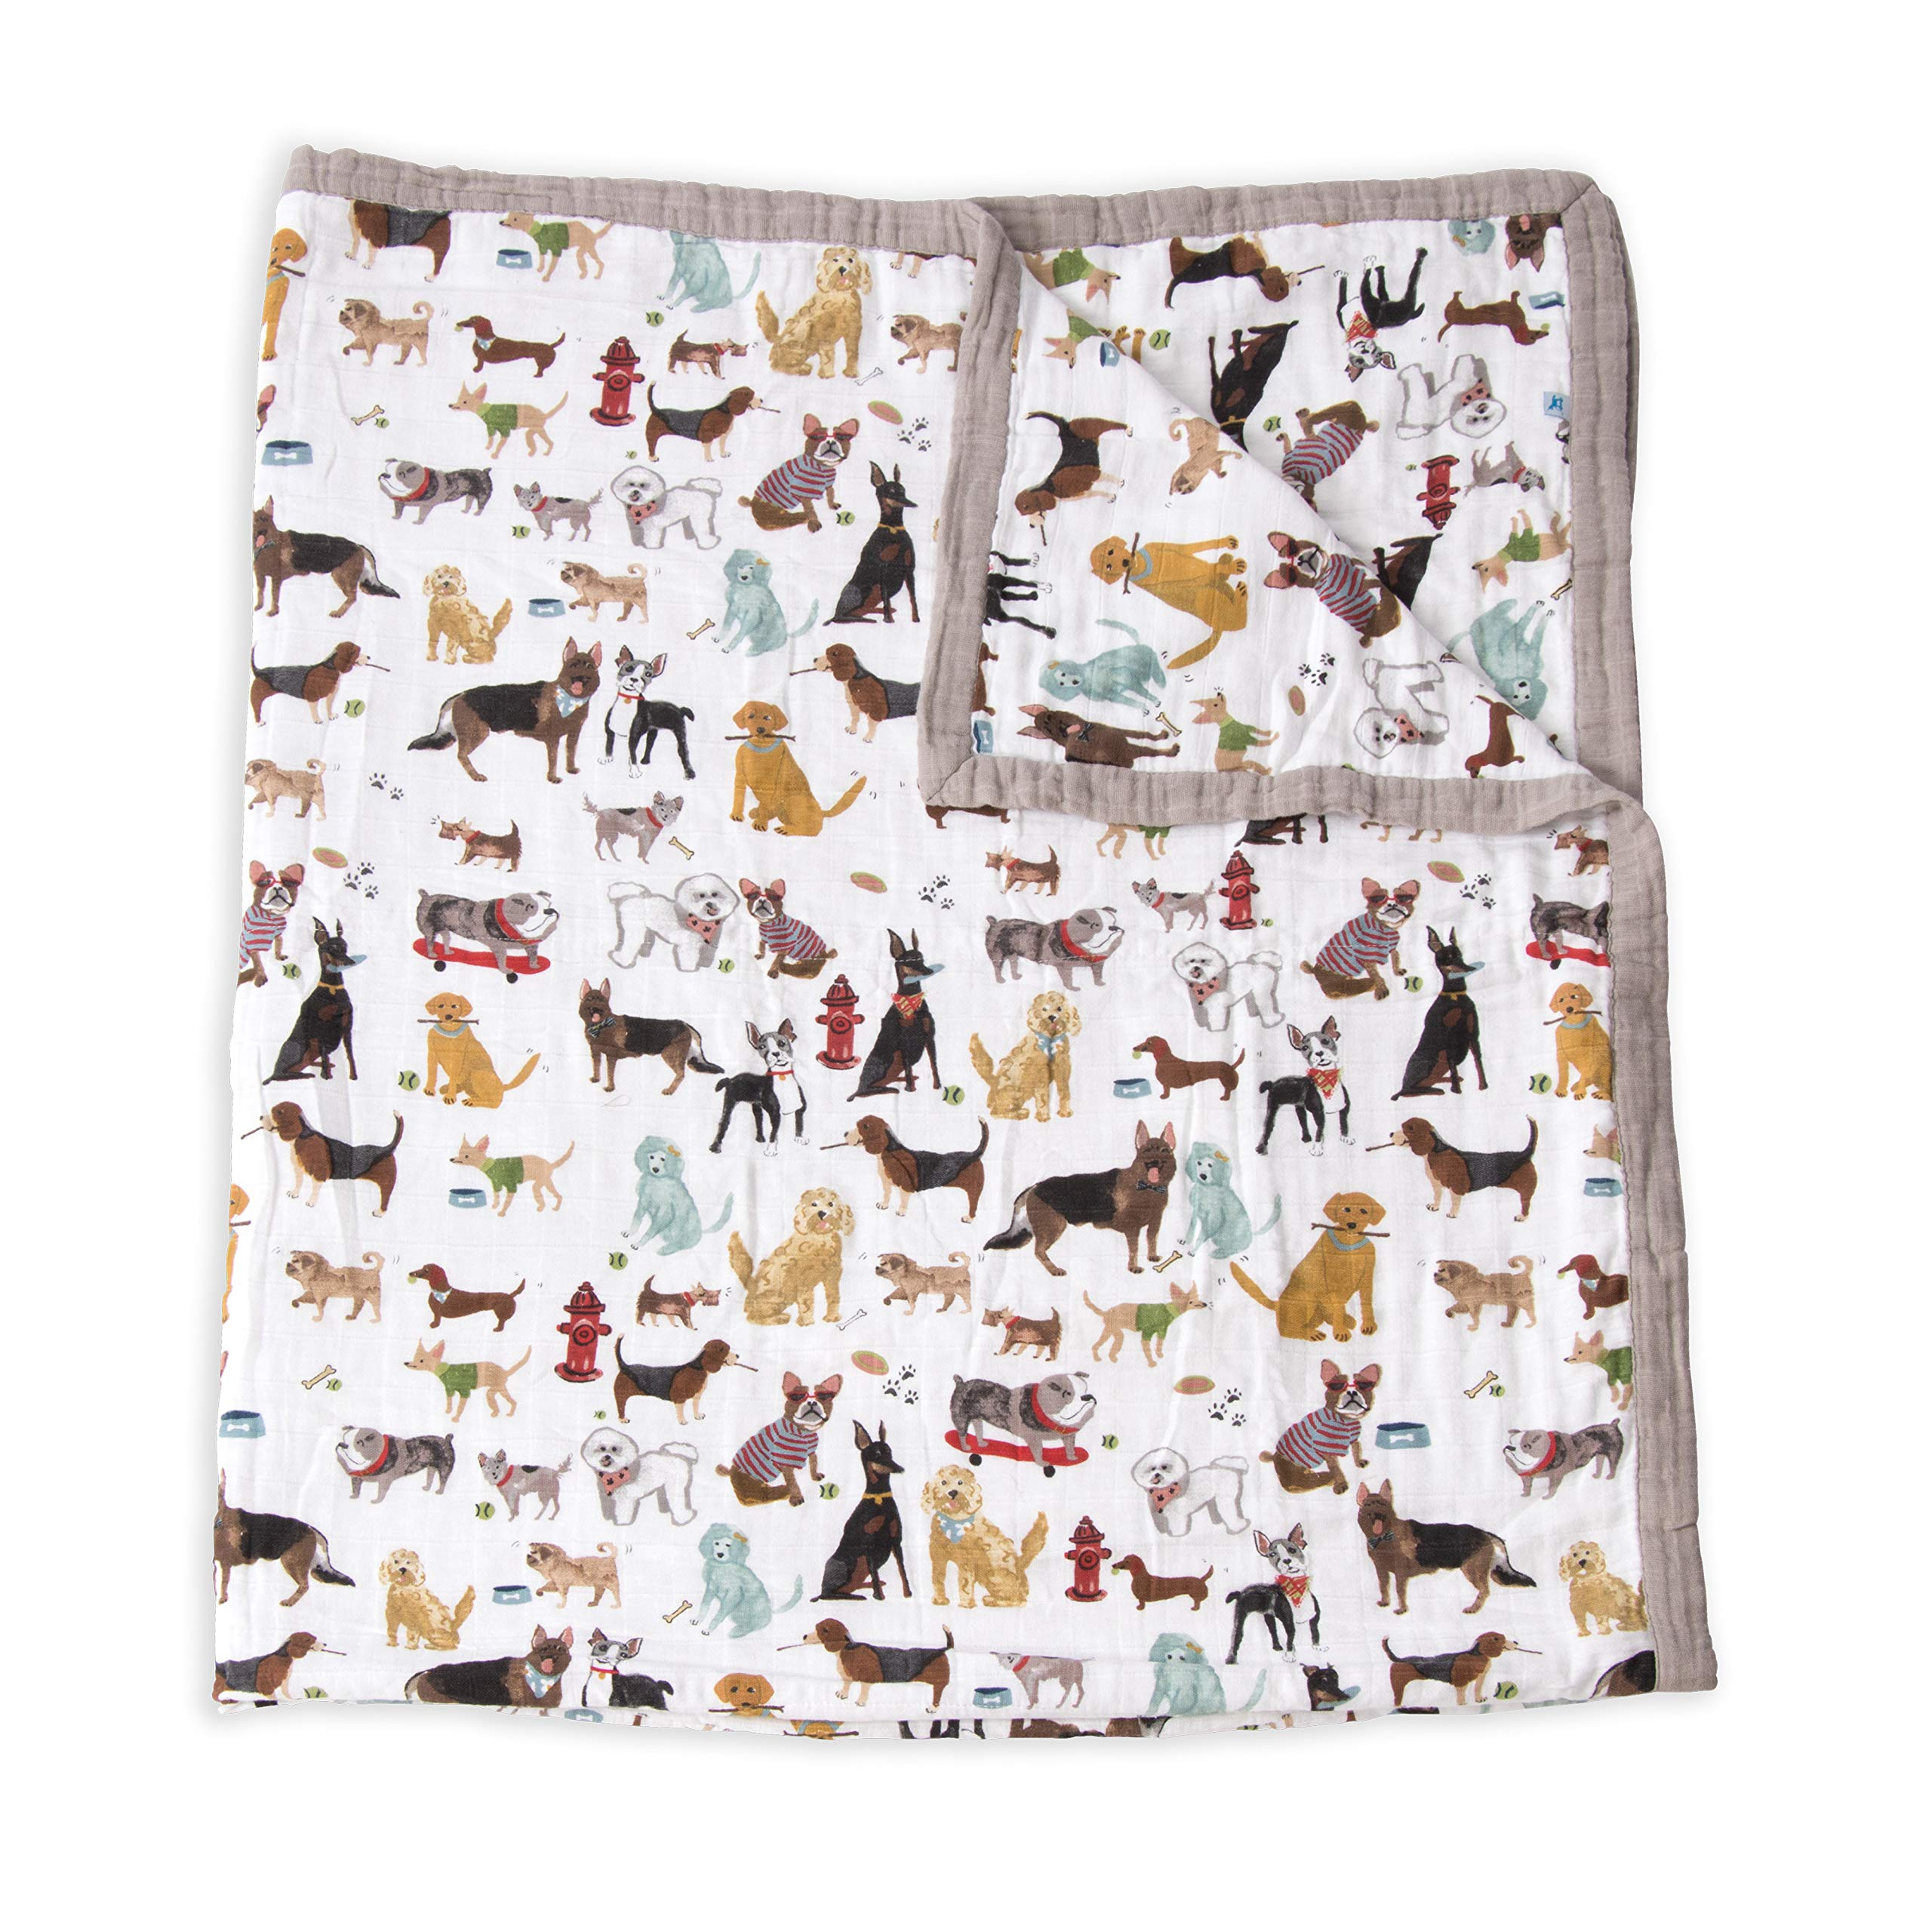 Little Unicorn Extra Soft Cotton Muslin Large Quilt Blanket - Woof by Little Unicorn